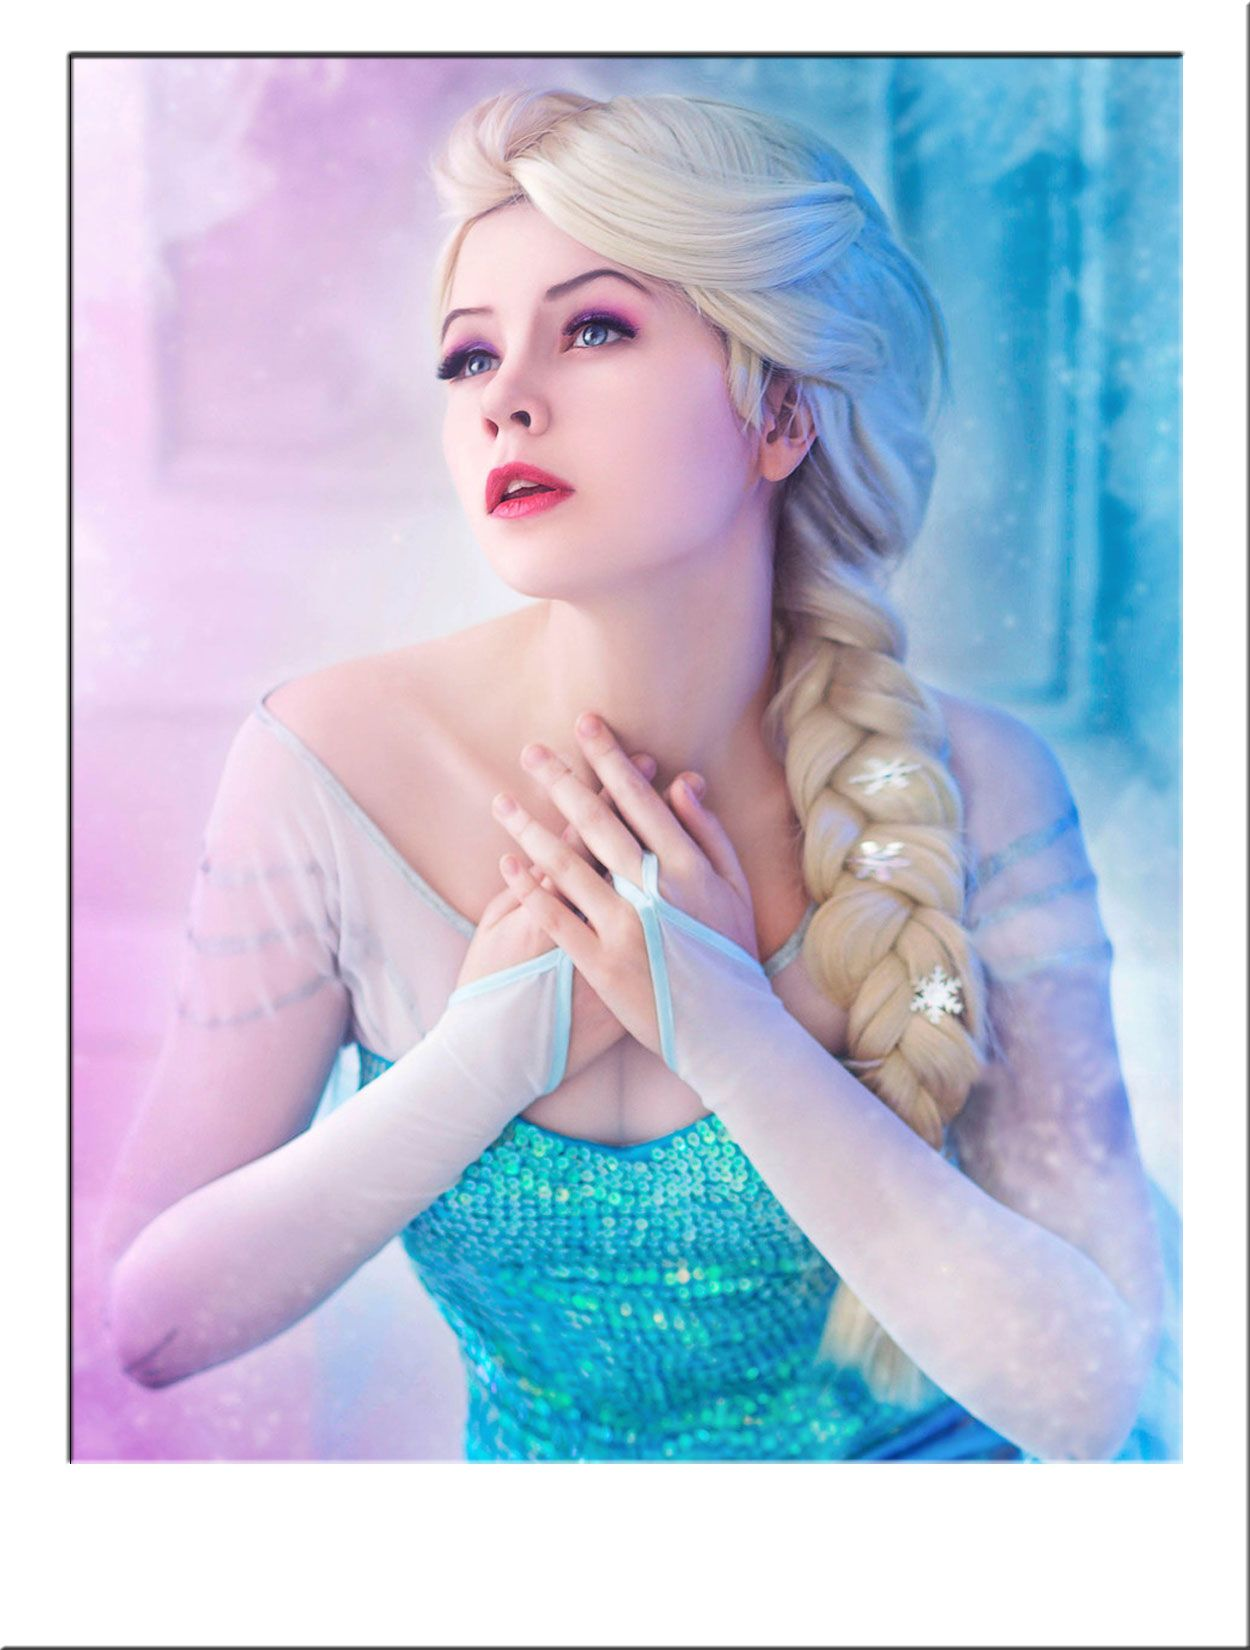 Elsa Frozen Costume Wig. Luxury Wig Ideal For Disneyu0027s Elsa Outfits  Requiring An Authentic Look. The White Blonde Plaited Hair Features A Full,  ...